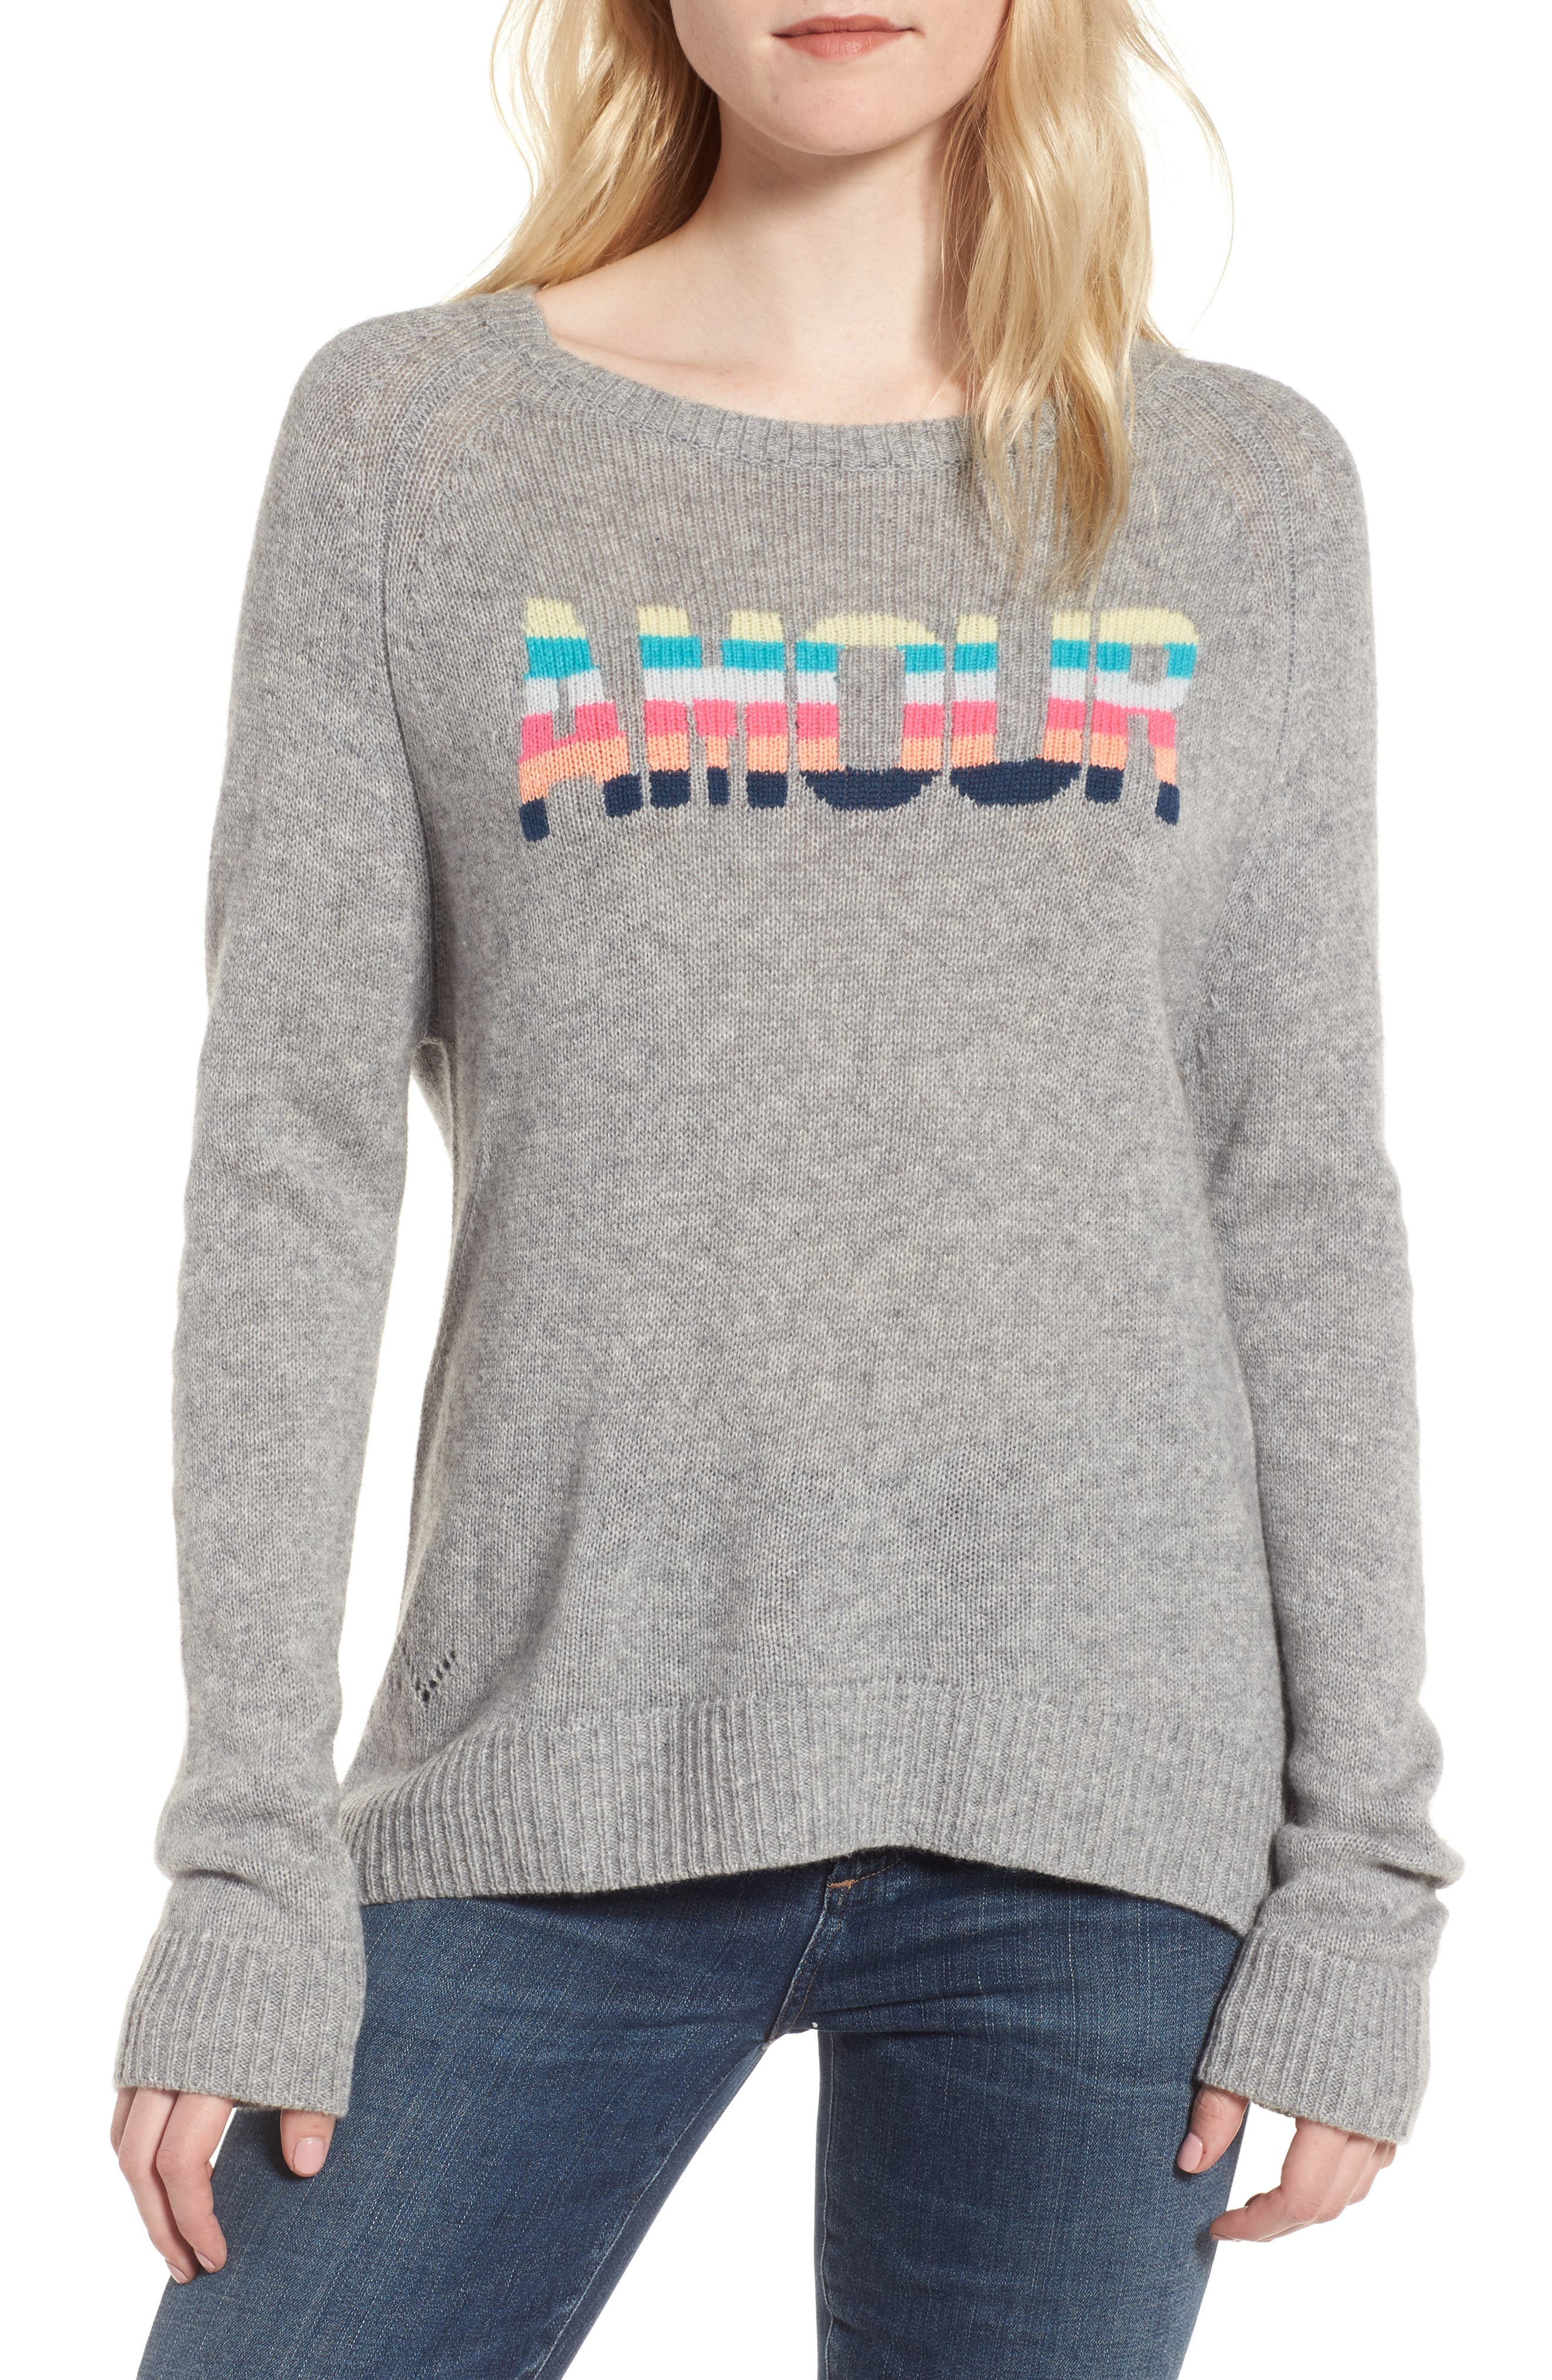 Baly Bis Cashmere Sweater,                             Main thumbnail 1, color,